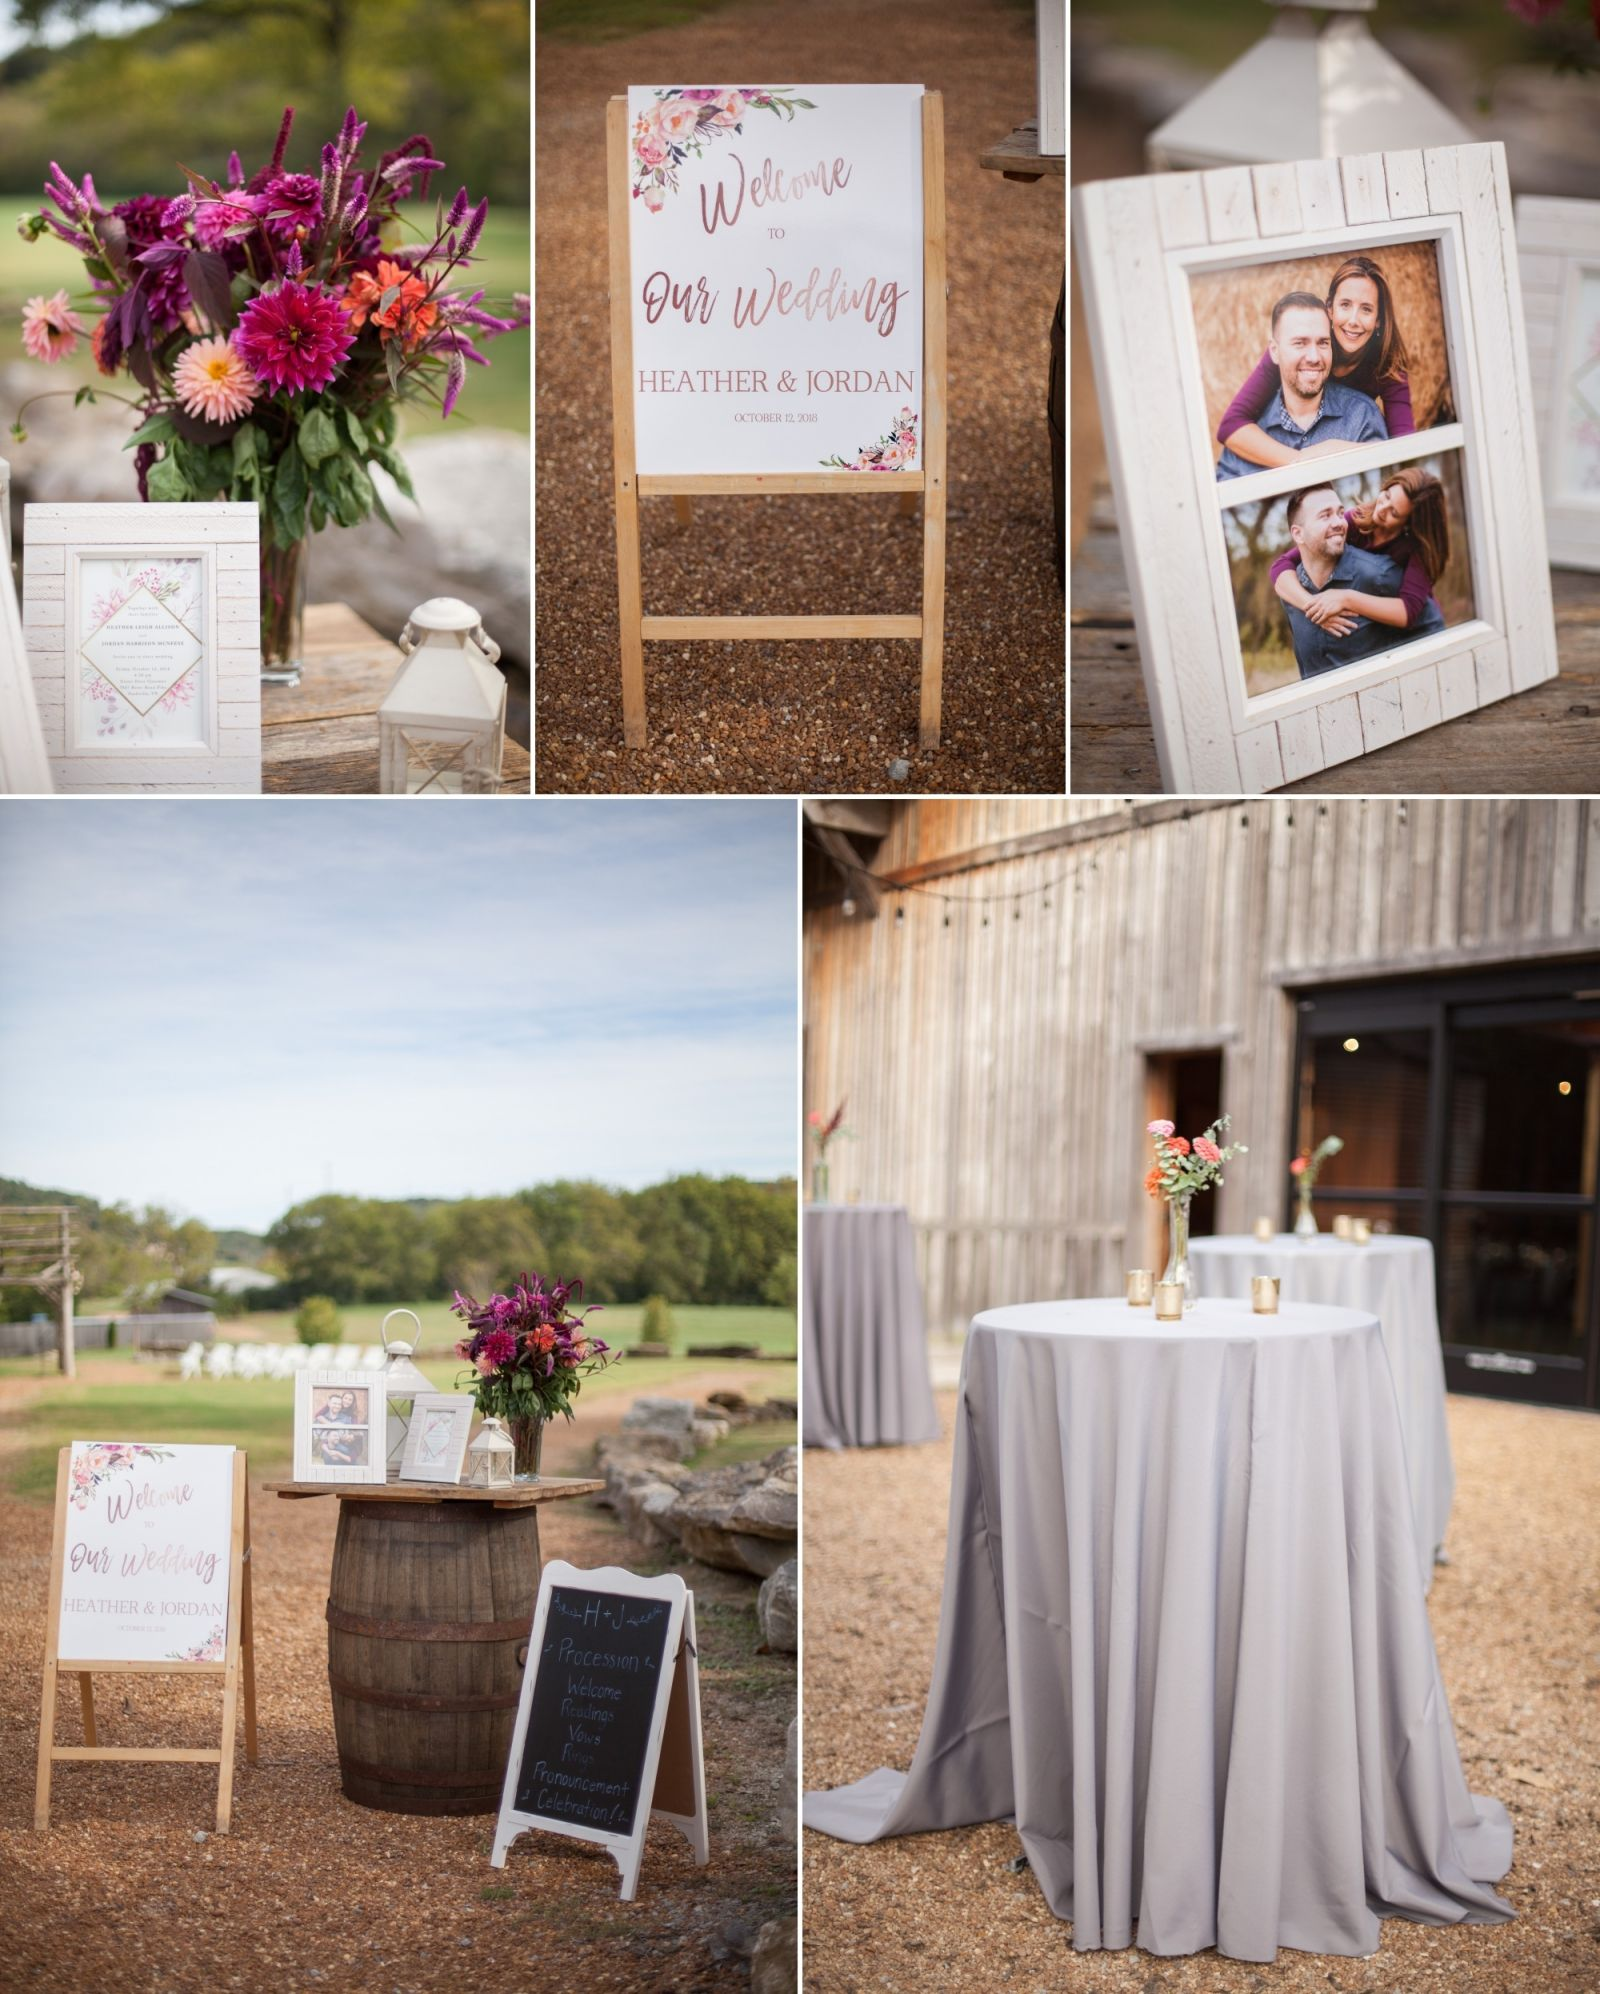 Green Door Gourmet Wedding In Nashville Tn Rustic Fall Outdoor Wedding Details On Organic Farm Wi Outdoor Fall Wedding Fall Wedding Fall Wedding Photography